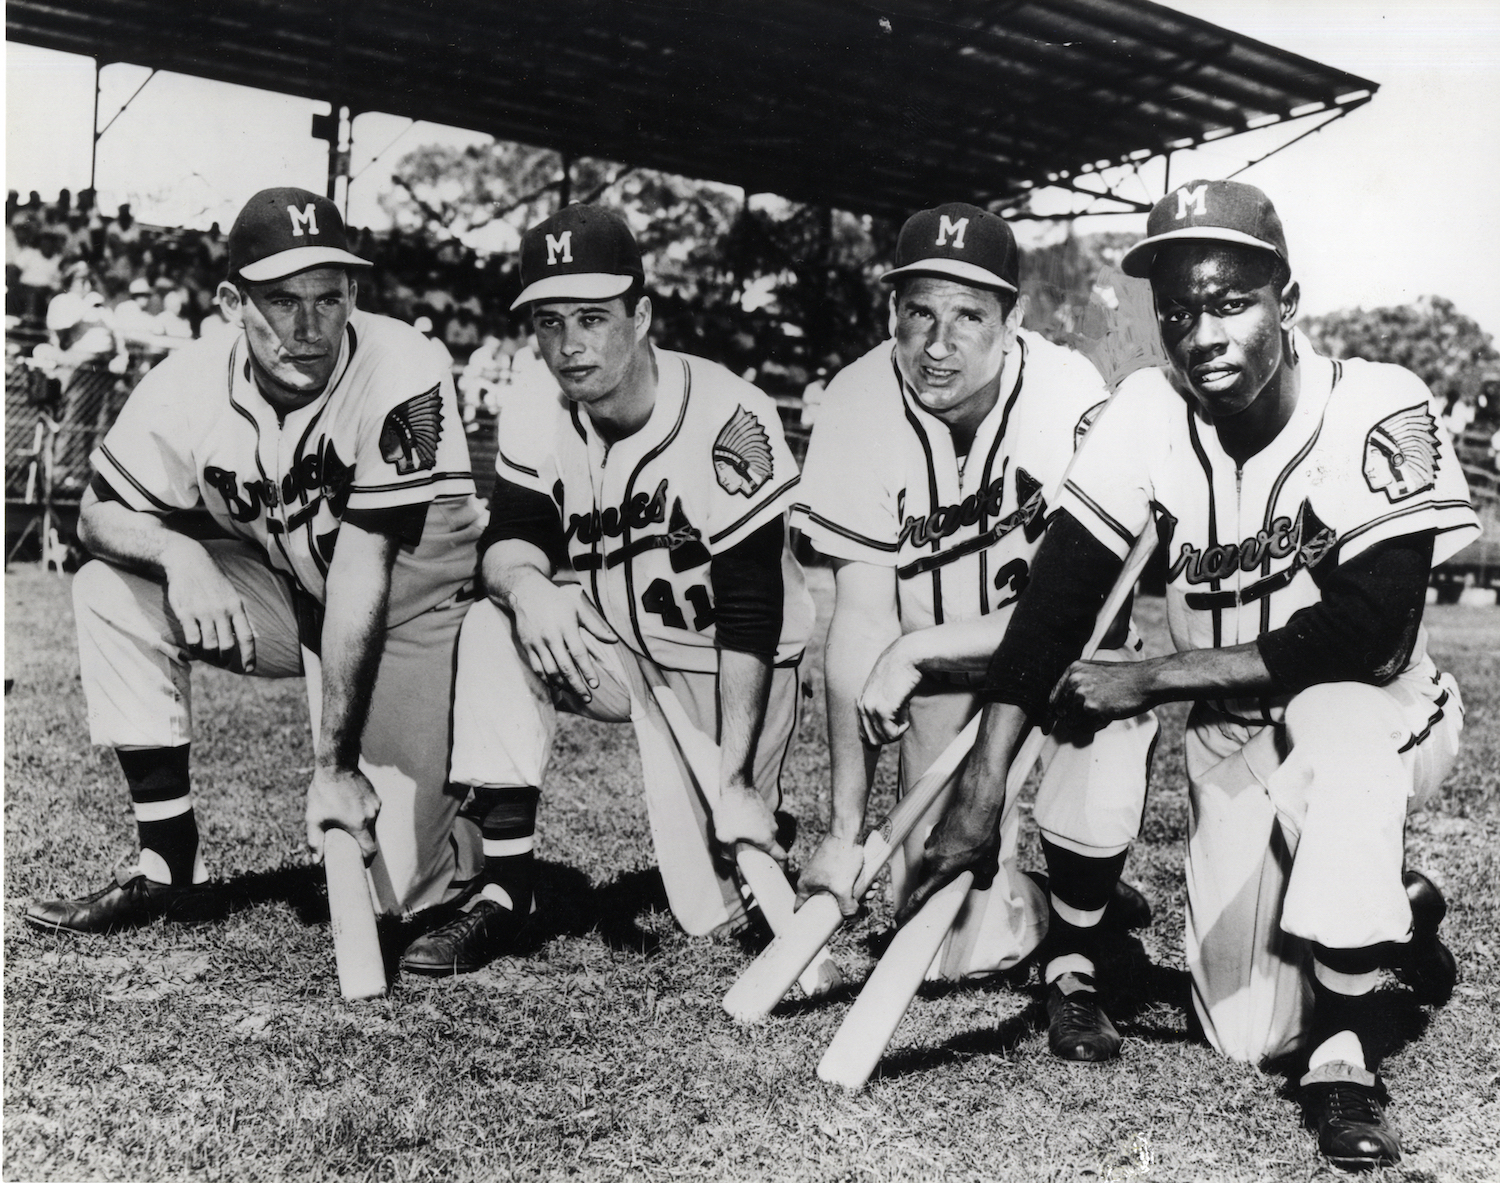 <table class=&quot;lightbox&quot;><tr><td colspan=2 class=&quot;lightbox-title&quot;>1957 Milwaukee Braves</td></tr><tr><td colspan=2 class=&quot;lightbox-caption&quot;>Photograph featuring, from left to right, Joe Adcock, Eddie Mathews, Bobby Thomson, and Hank Aaron of the 1957 Braves at spring training.</td></tr><tr><td colspan=2 class=&quot;lightbox-spacer&quot;></td></tr><tr class=&quot;lightbox-detail&quot;><td class=&quot;cell-title&quot;>Source: </td><td class=&quot;cell-value&quot;>From the Milwaukee County Historical Society.<br /><a href=&quot;https://milwaukeehistory.net/research/photographic-collections/&quot; target=&quot;_blank&quot;>Milwaukee County Historical Society</a></td></tr><tr class=&quot;filler-row&quot;><td colspan=2>&nbsp;</td></tr></table>